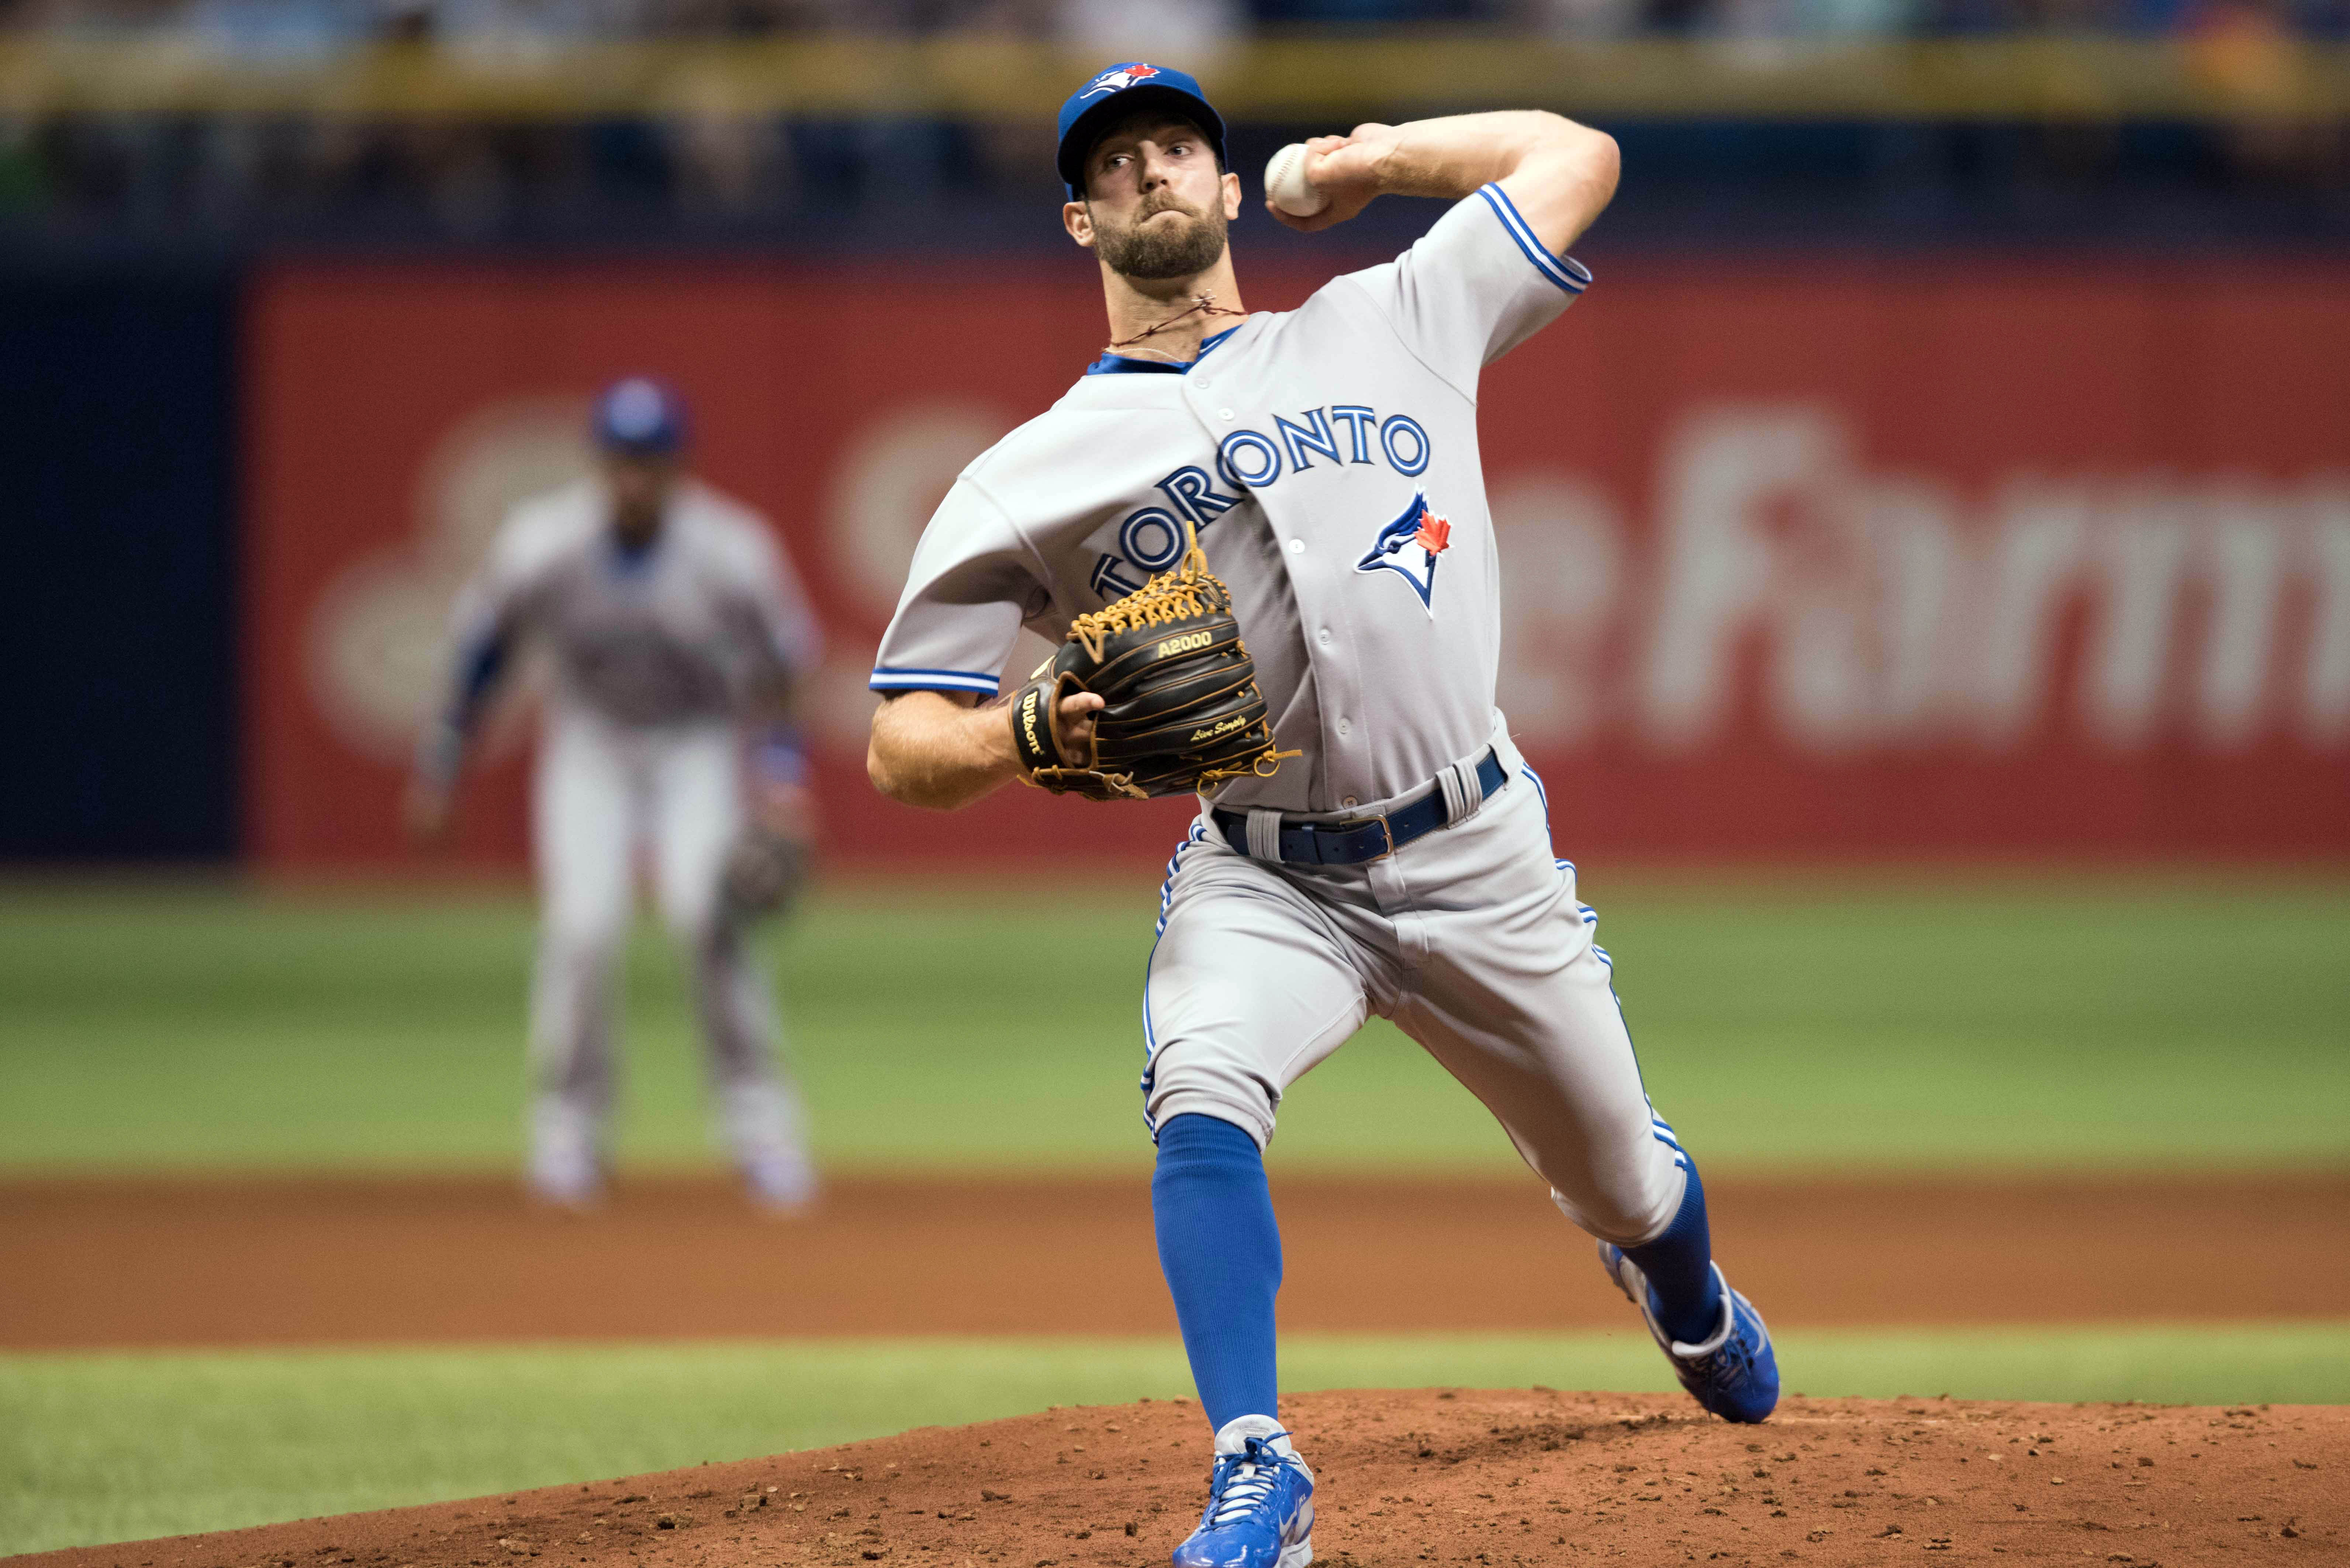 Daniel Norris makes his first start for Buffalo, allowing 1 run